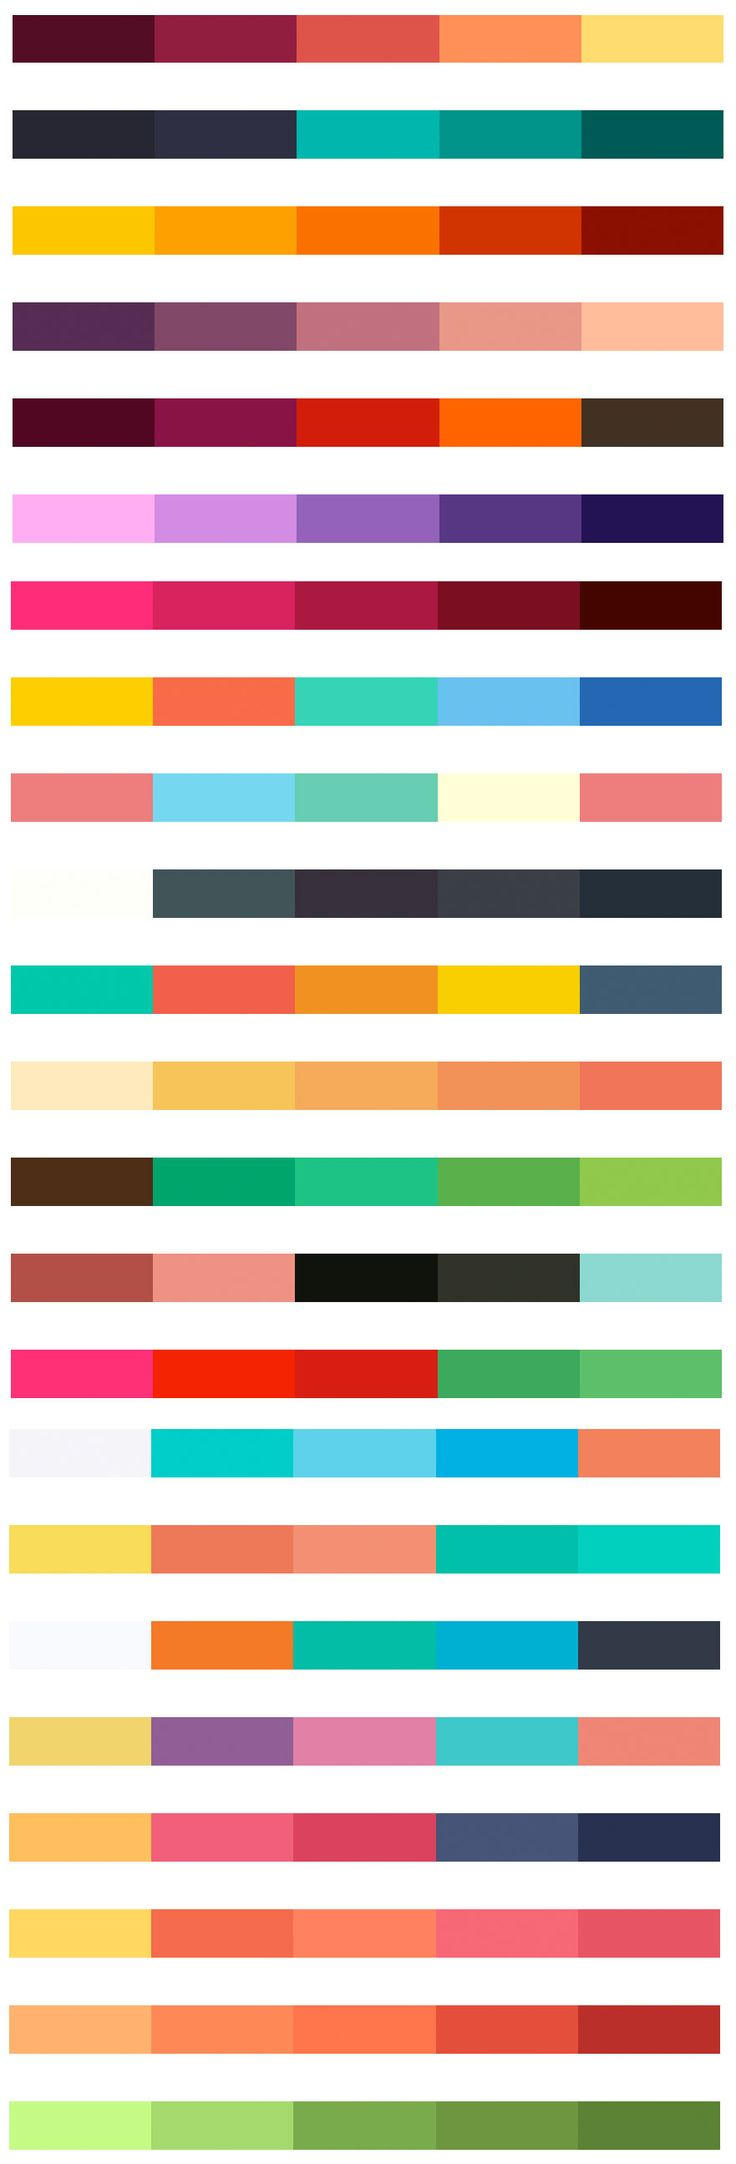 Web colors lime - 188 Best Color Inspiration Images On Pinterest Color Palettes Colors And Flat Design Colors